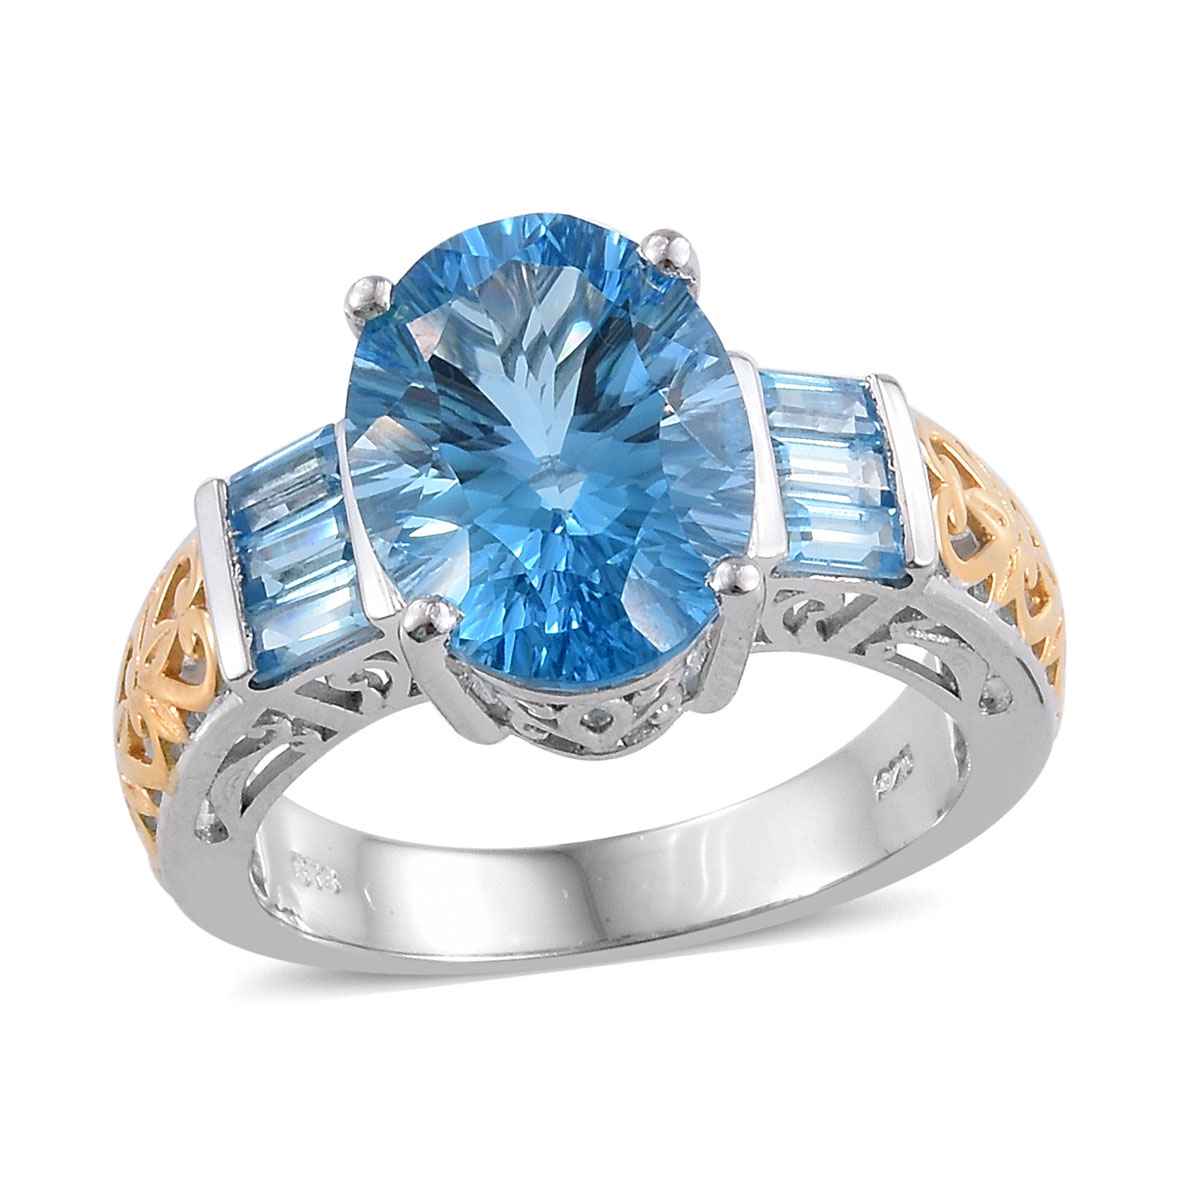 Premium Swiss Blue Topaz Ring in Vermeil YG and Platinum Over Sterling Silver (Size 9.0) 10.25 ctw